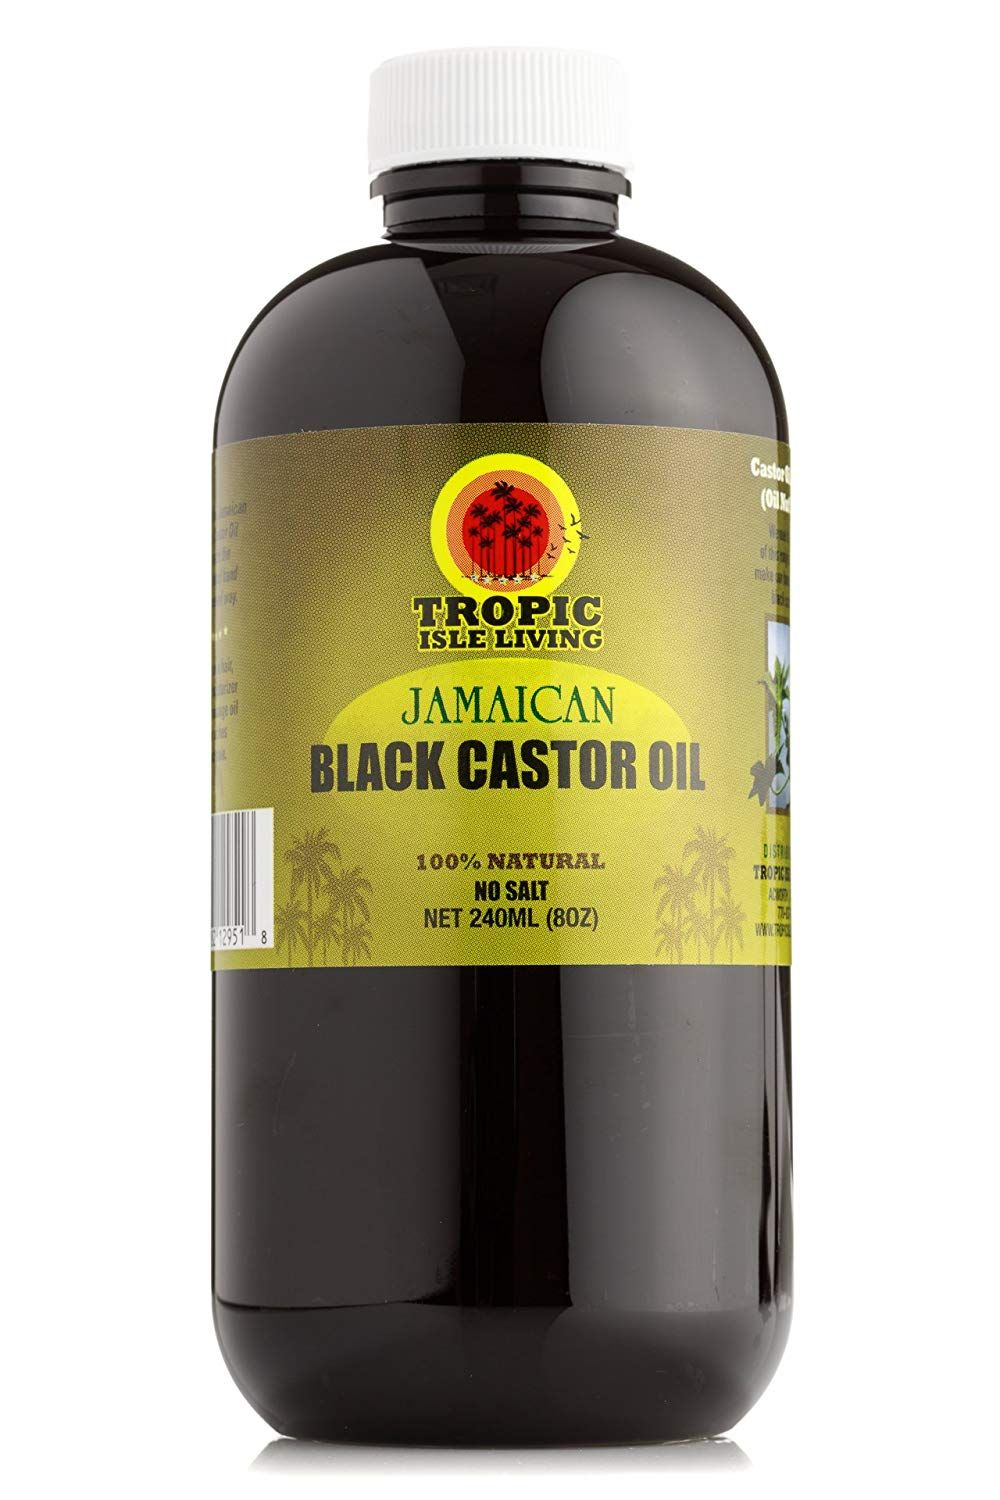 Jamaican black castor oil can regrow and thicken thinningbalding